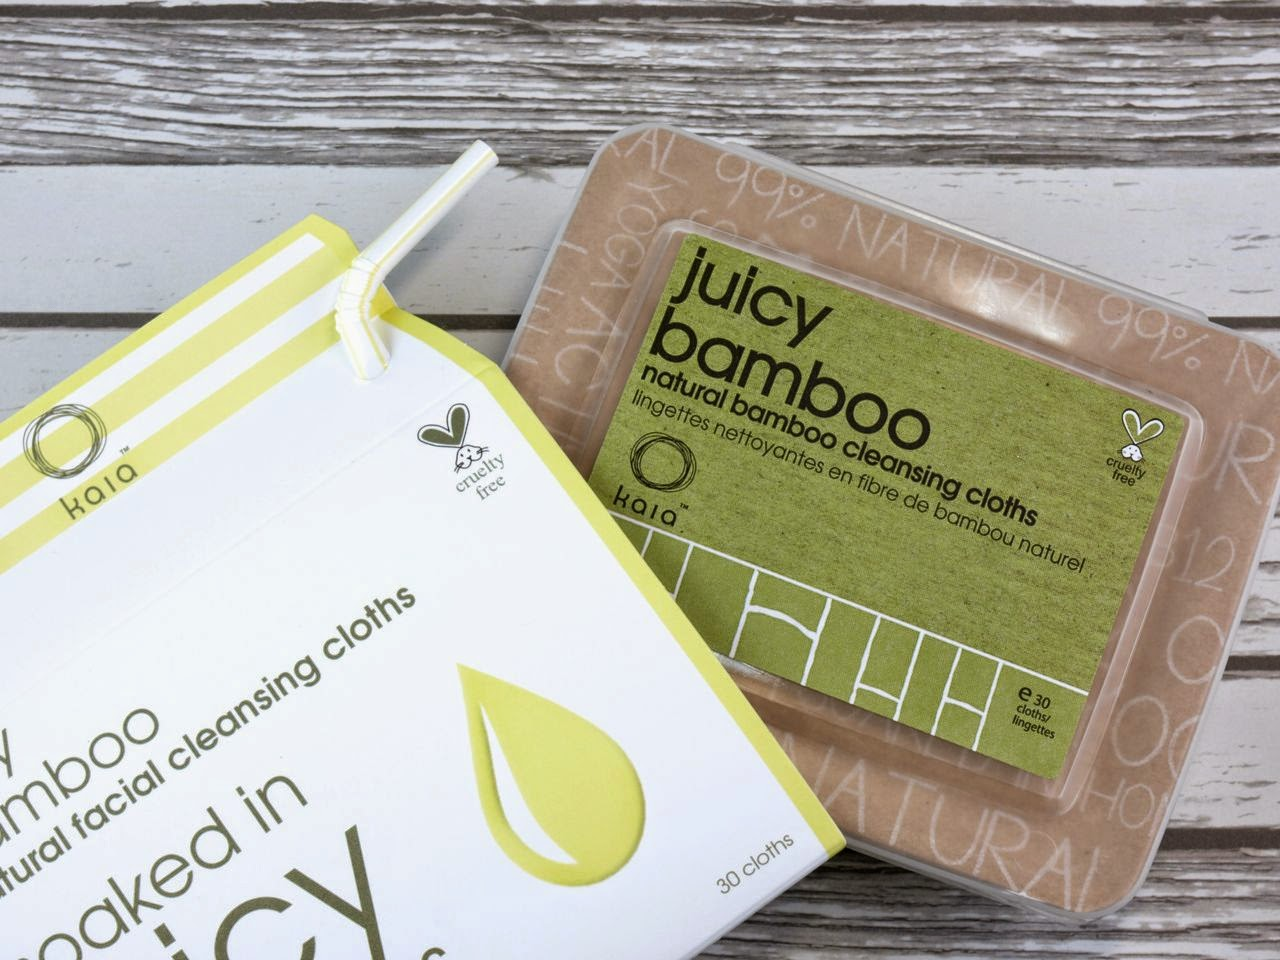 Kaia Naturals Juicy Bamboo Natural Cleansing Cloths: Review